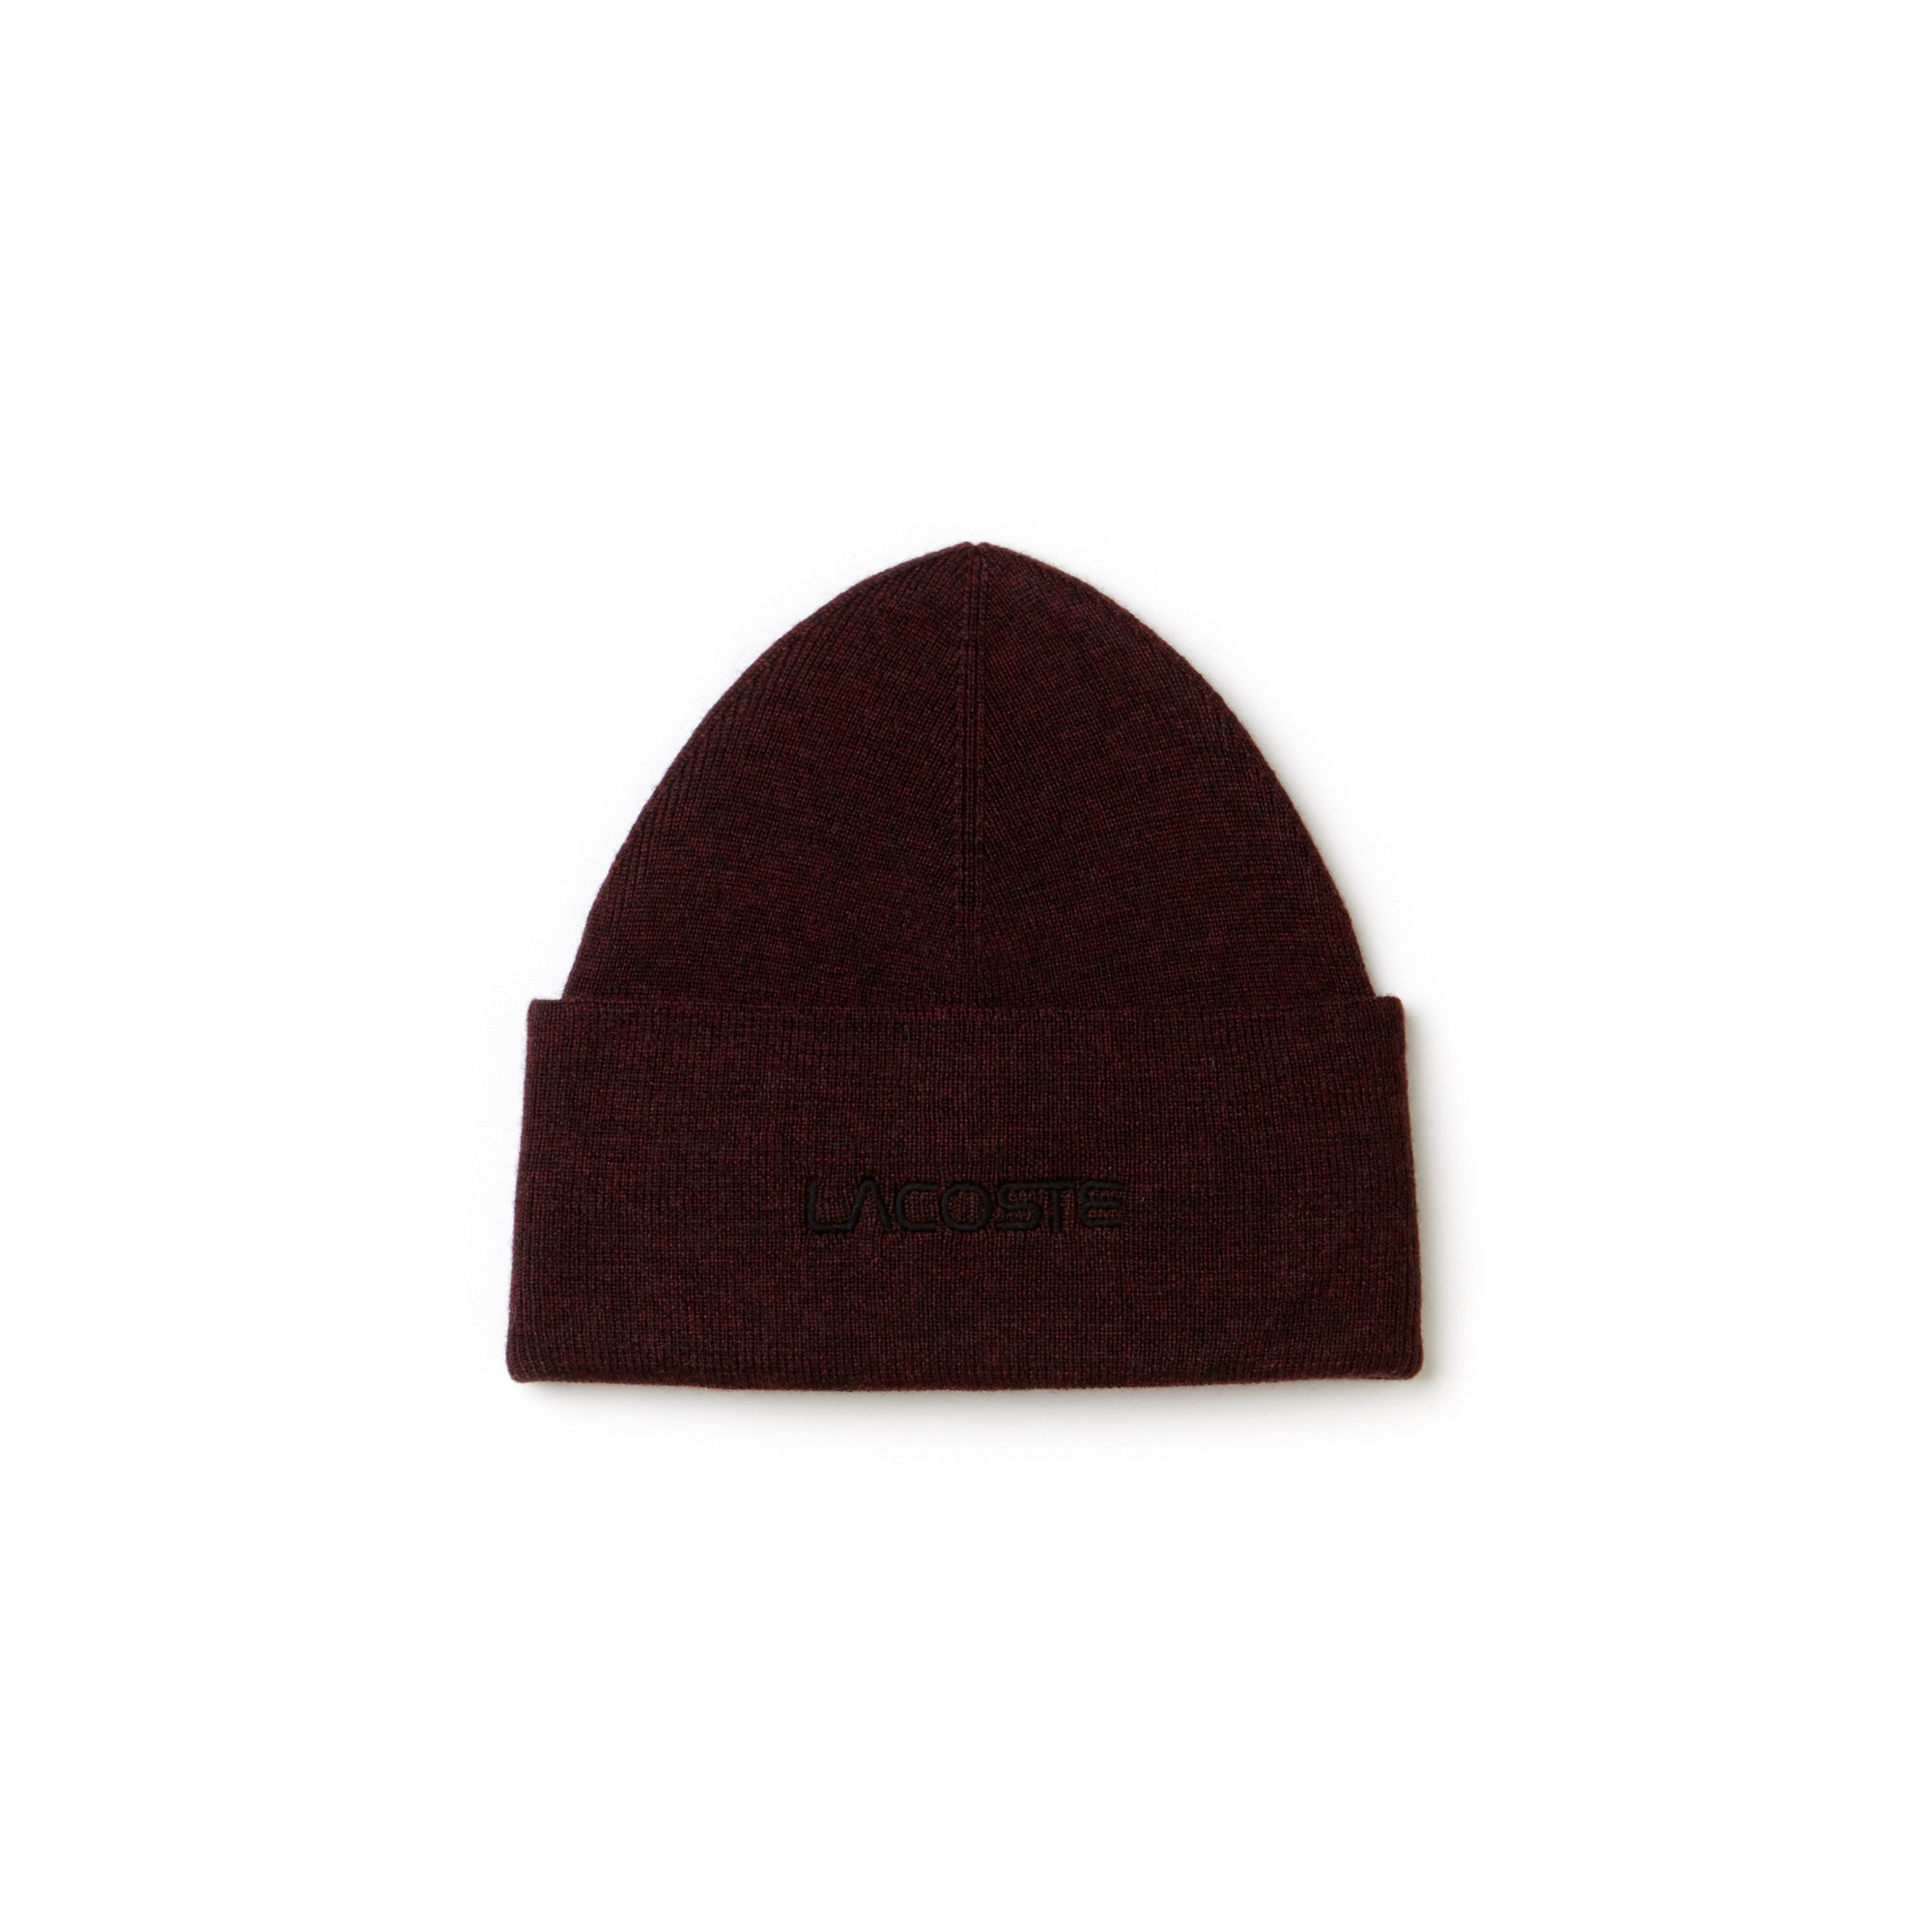 Men's Embroidery Turned Edge Ribbed Wool Beanie